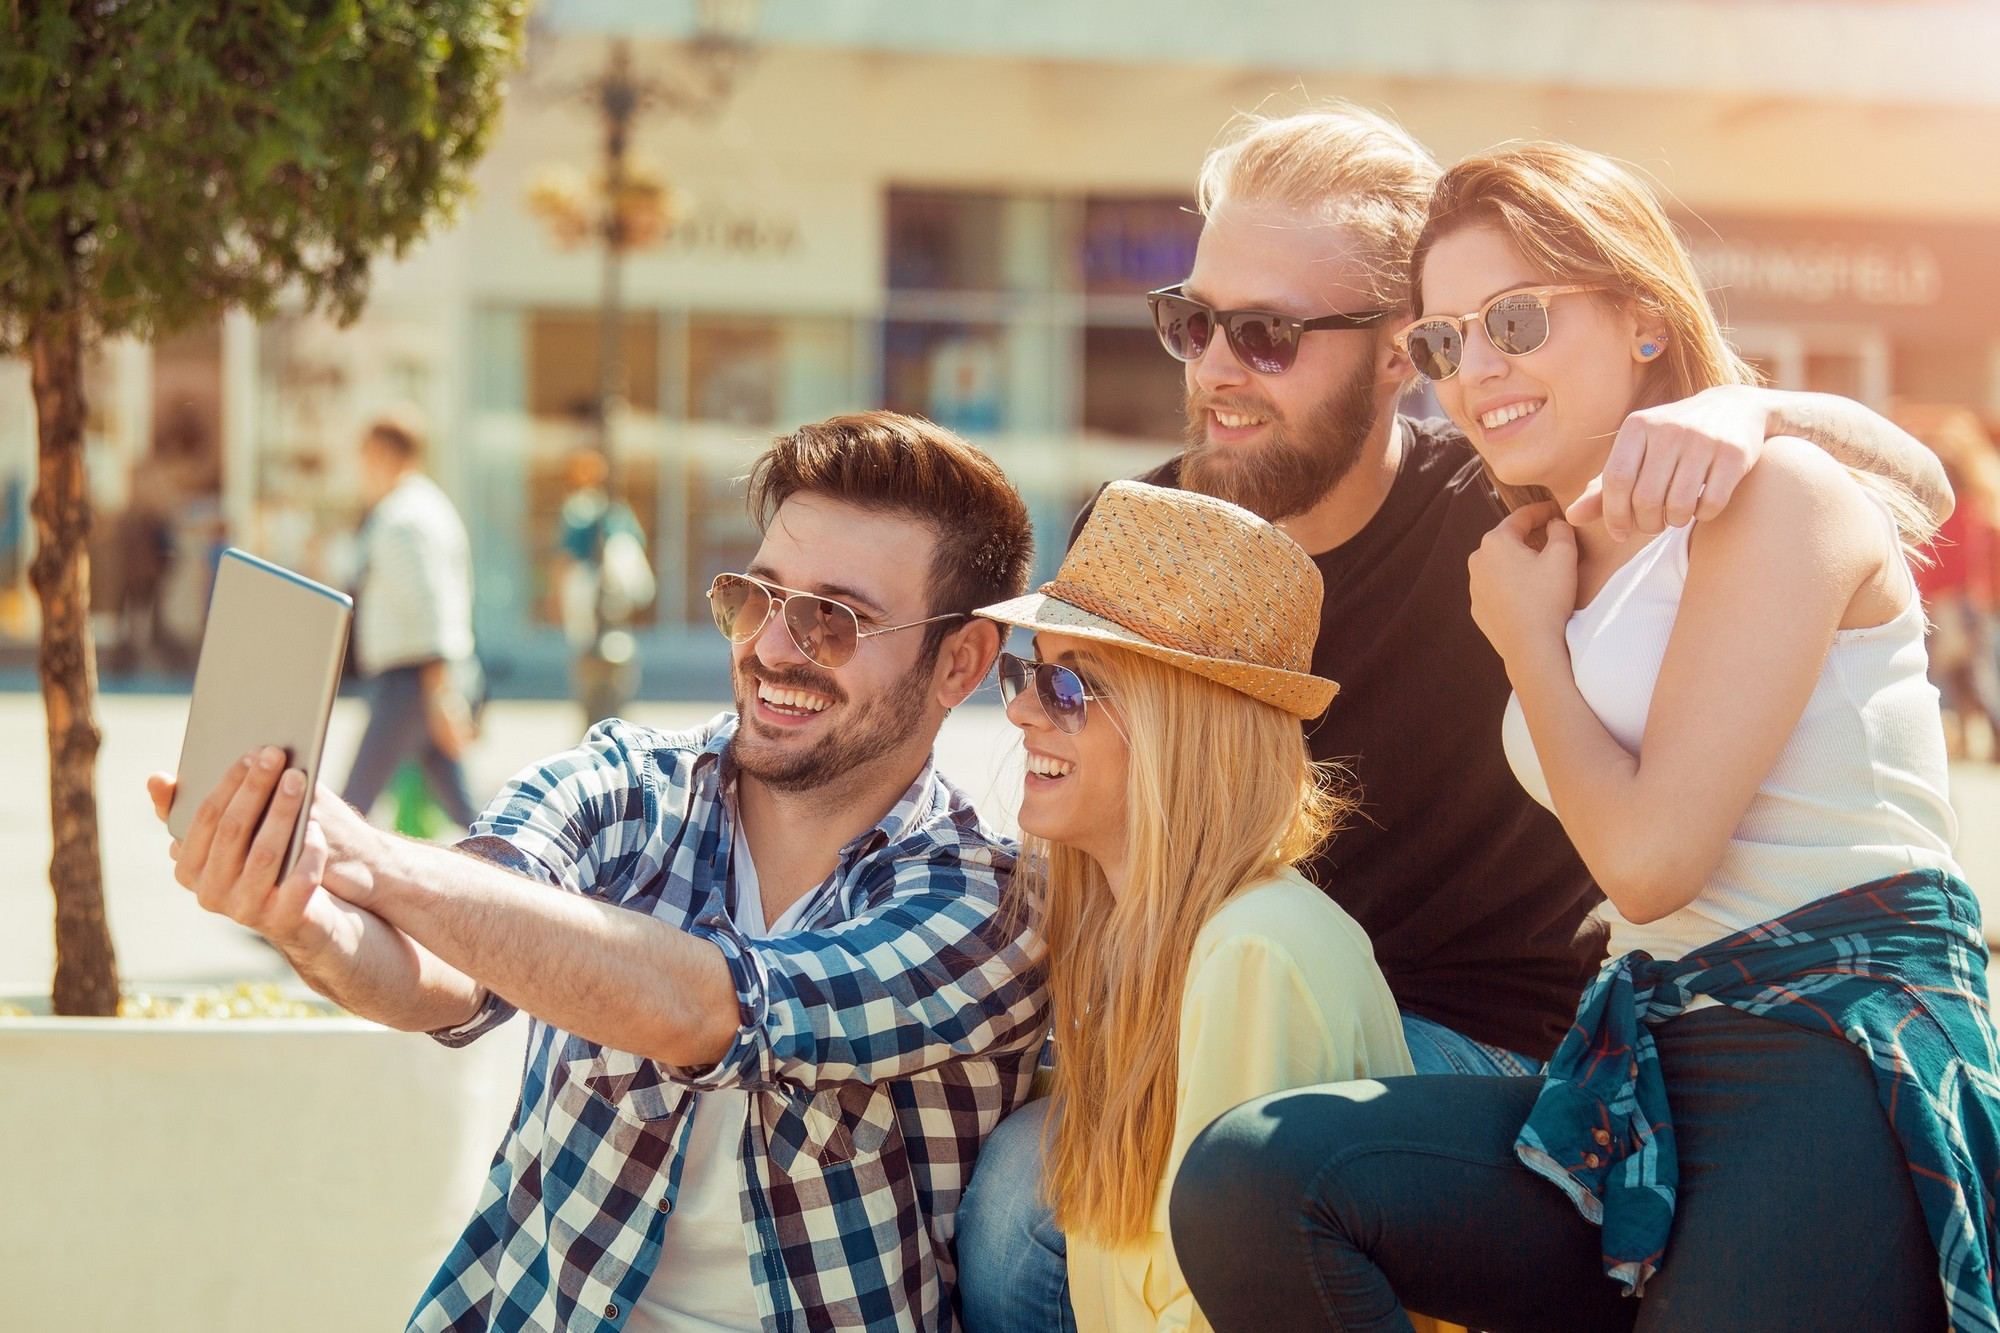 Group of friends taking a selfie with smartphone.